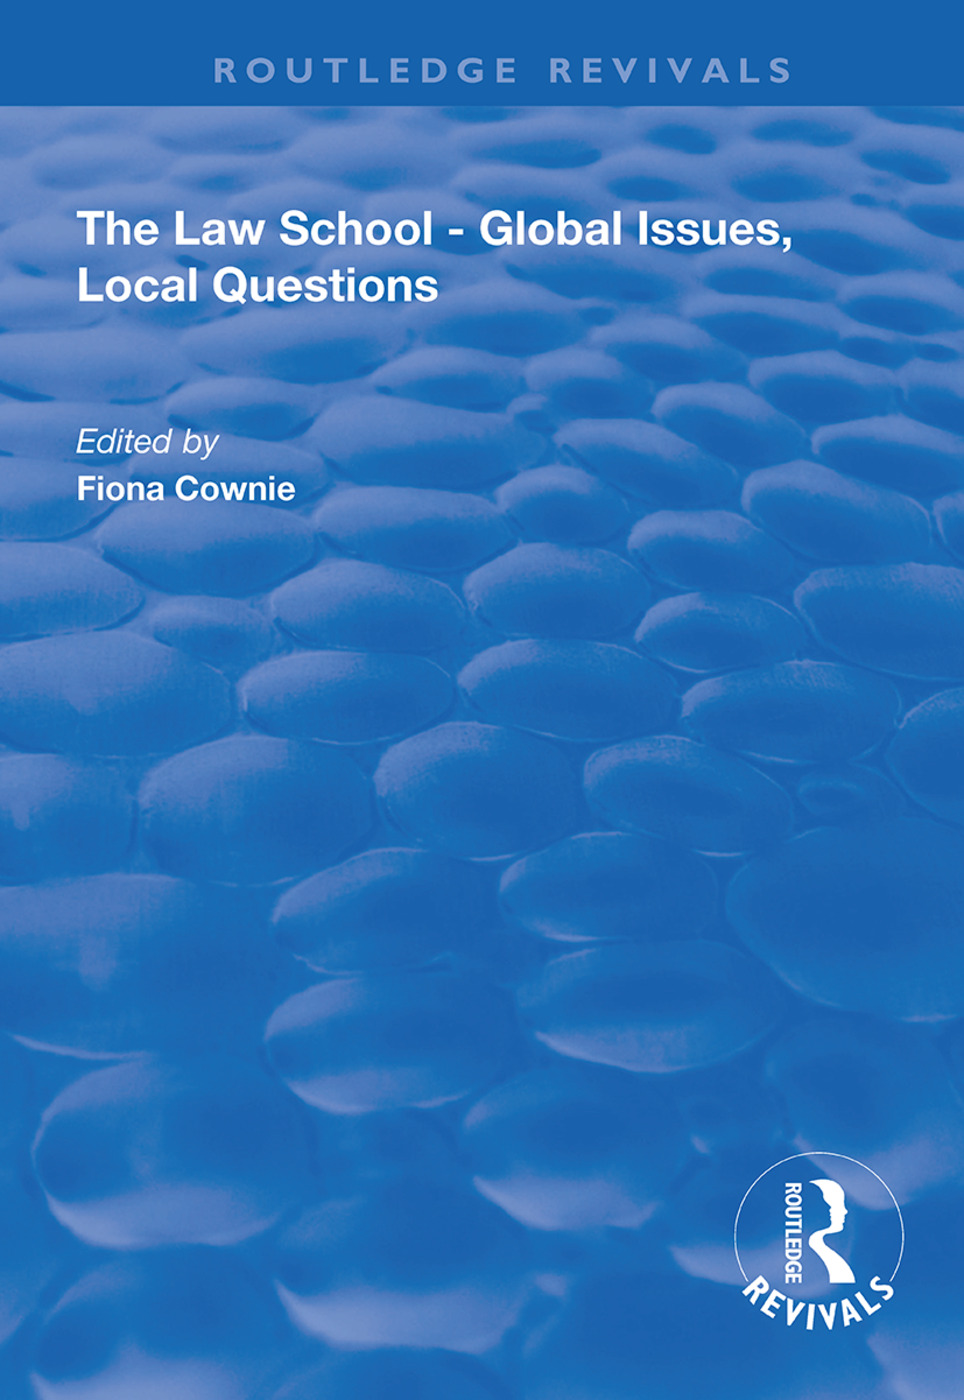 The Law School - Global Issues, Local Questions book cover